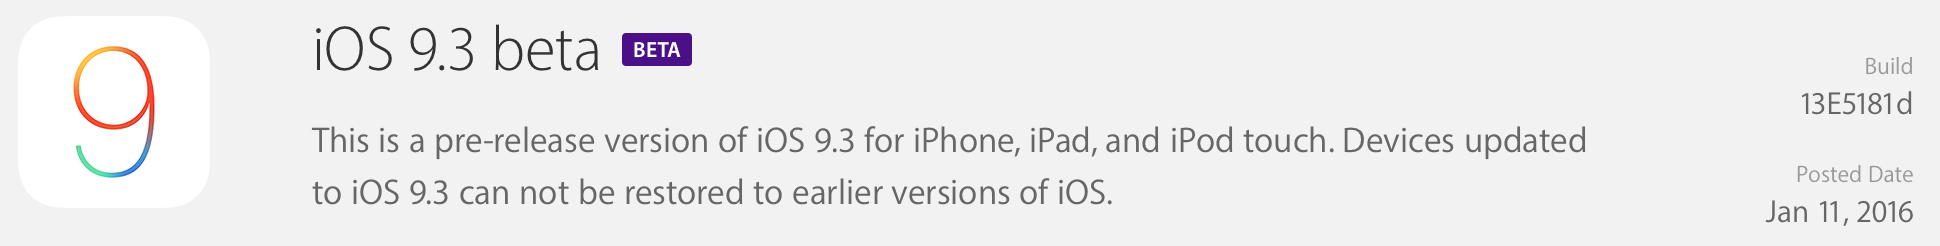 iOS 9 Beta Release Notes-bildschirmfoto-2016-01-11-um-19.51.46.png